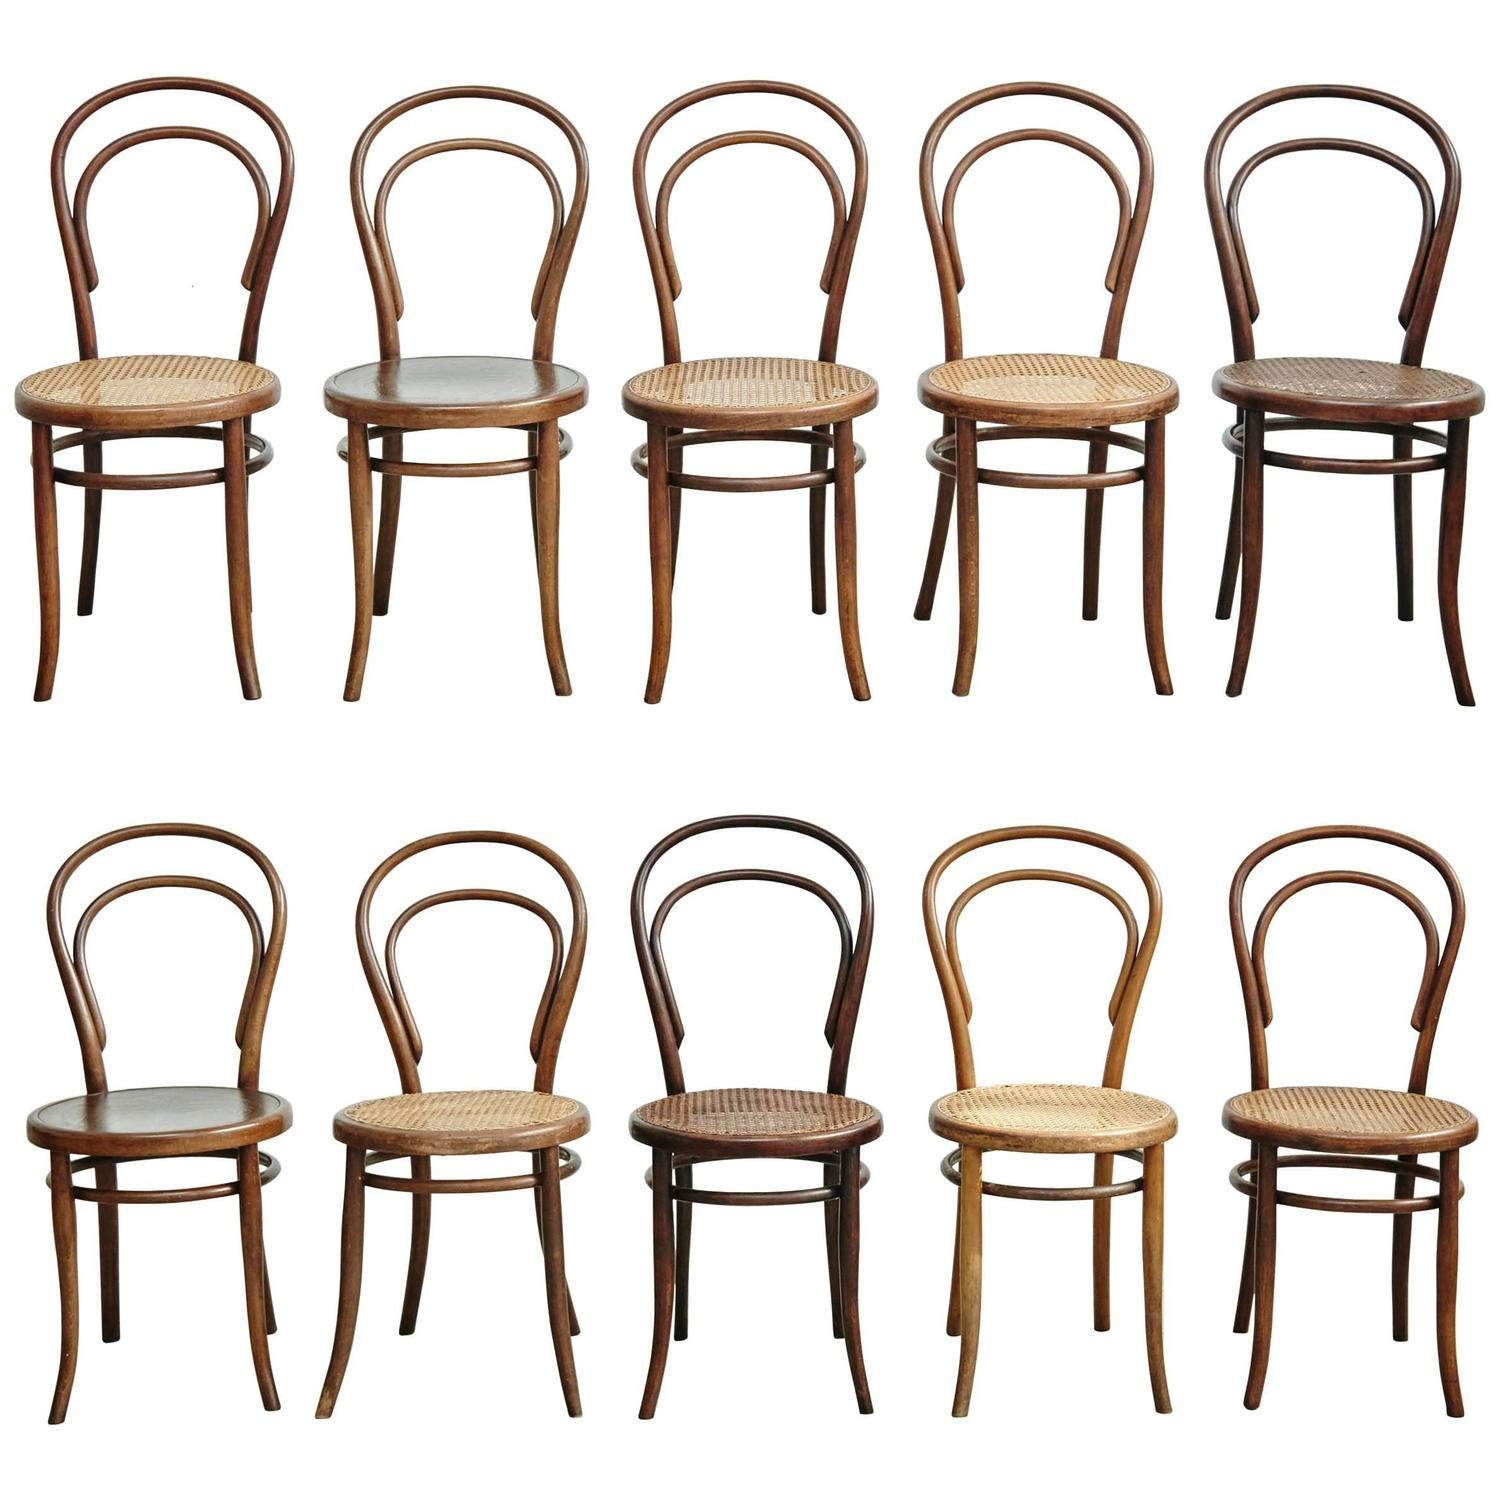 Set Of Ten Chairs By Thonet, Fischel, Kohn And Unknown, Circa 1900 At  1stdibs